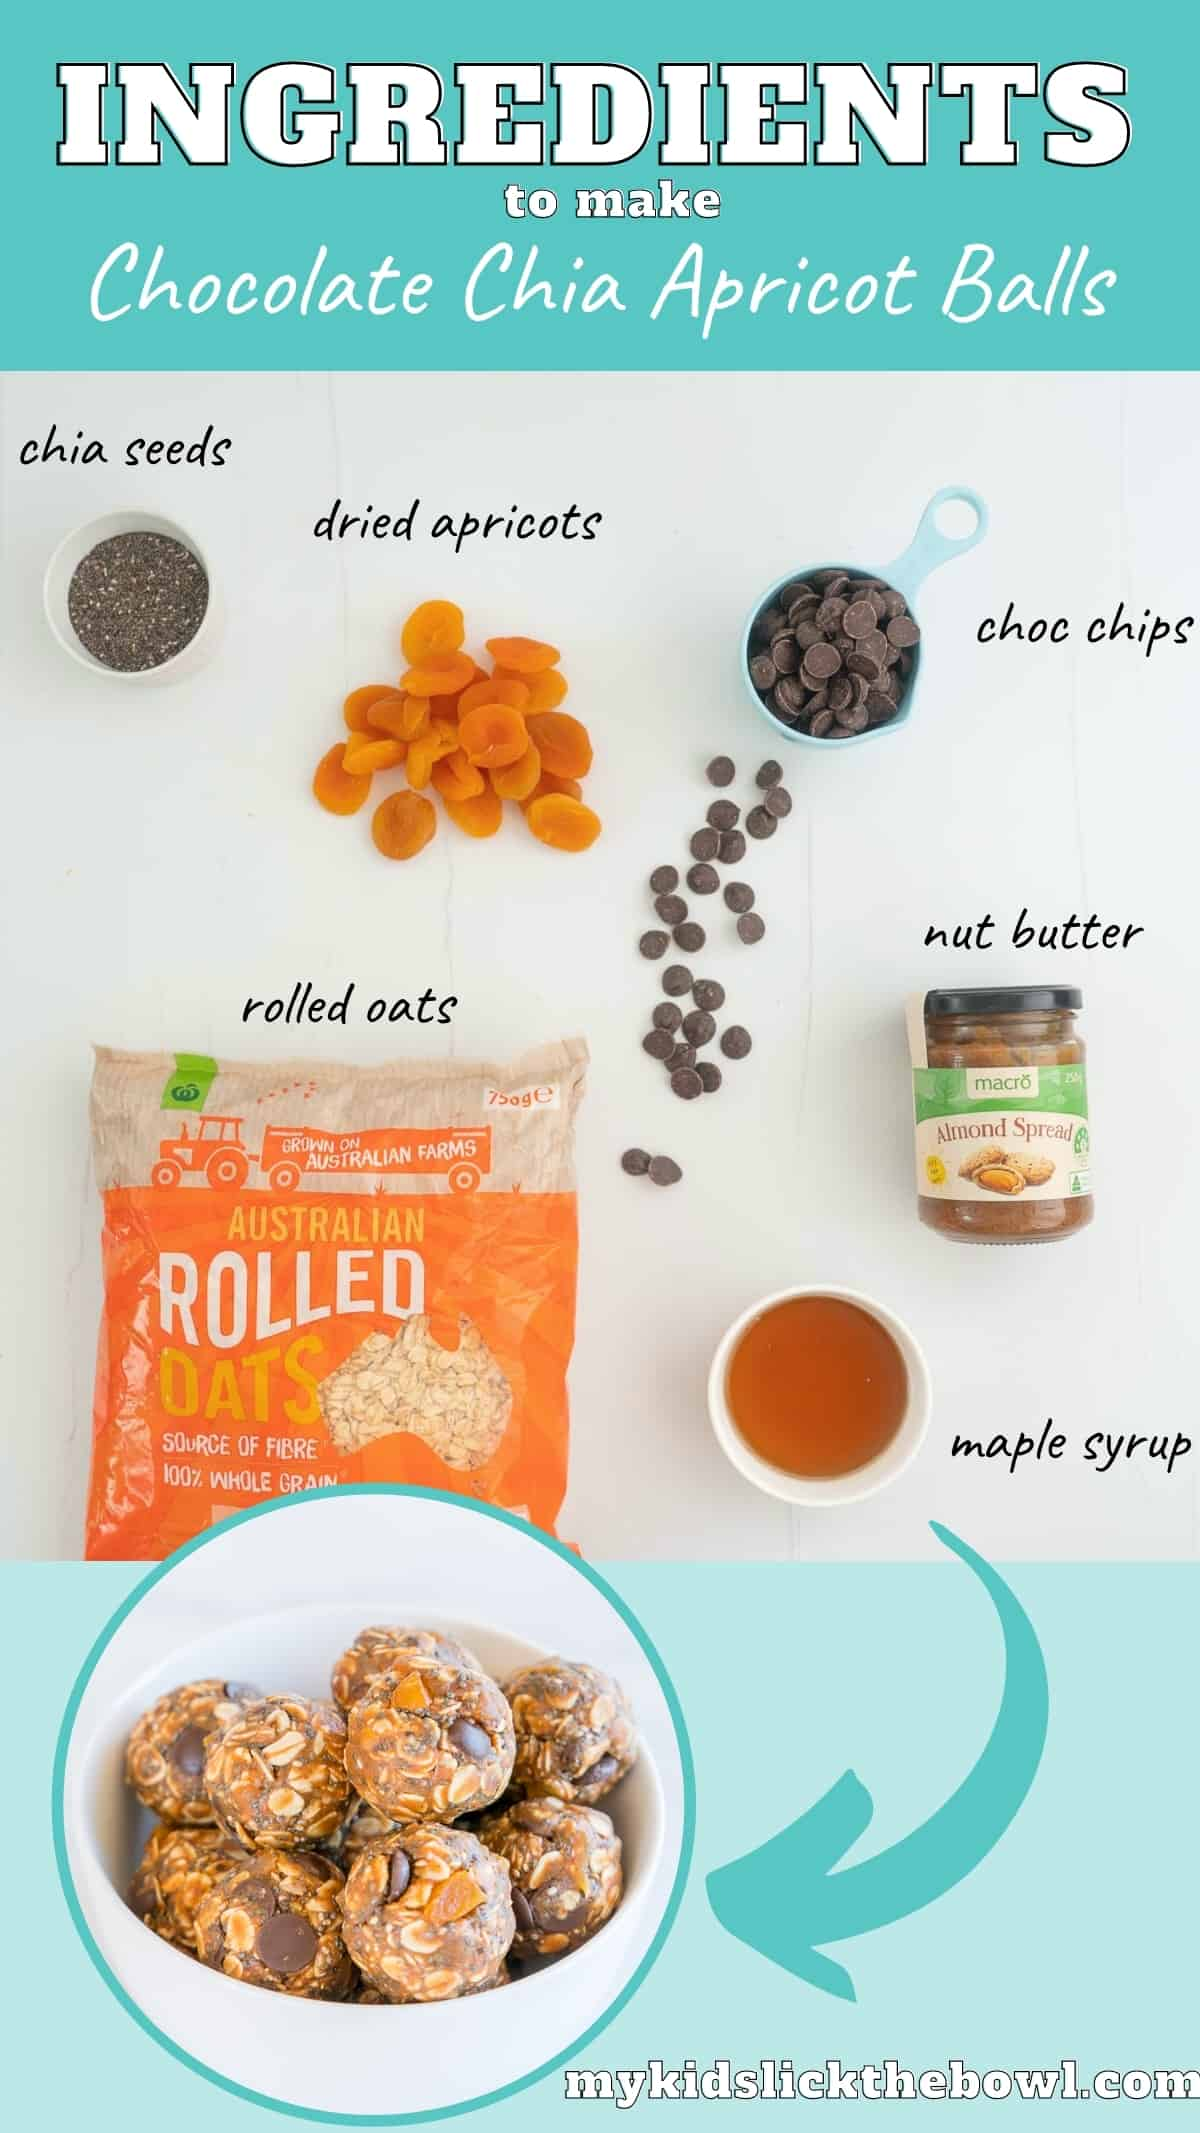 The ingredients to make no-bake apricot balls laid out on a bench top with text overlay.